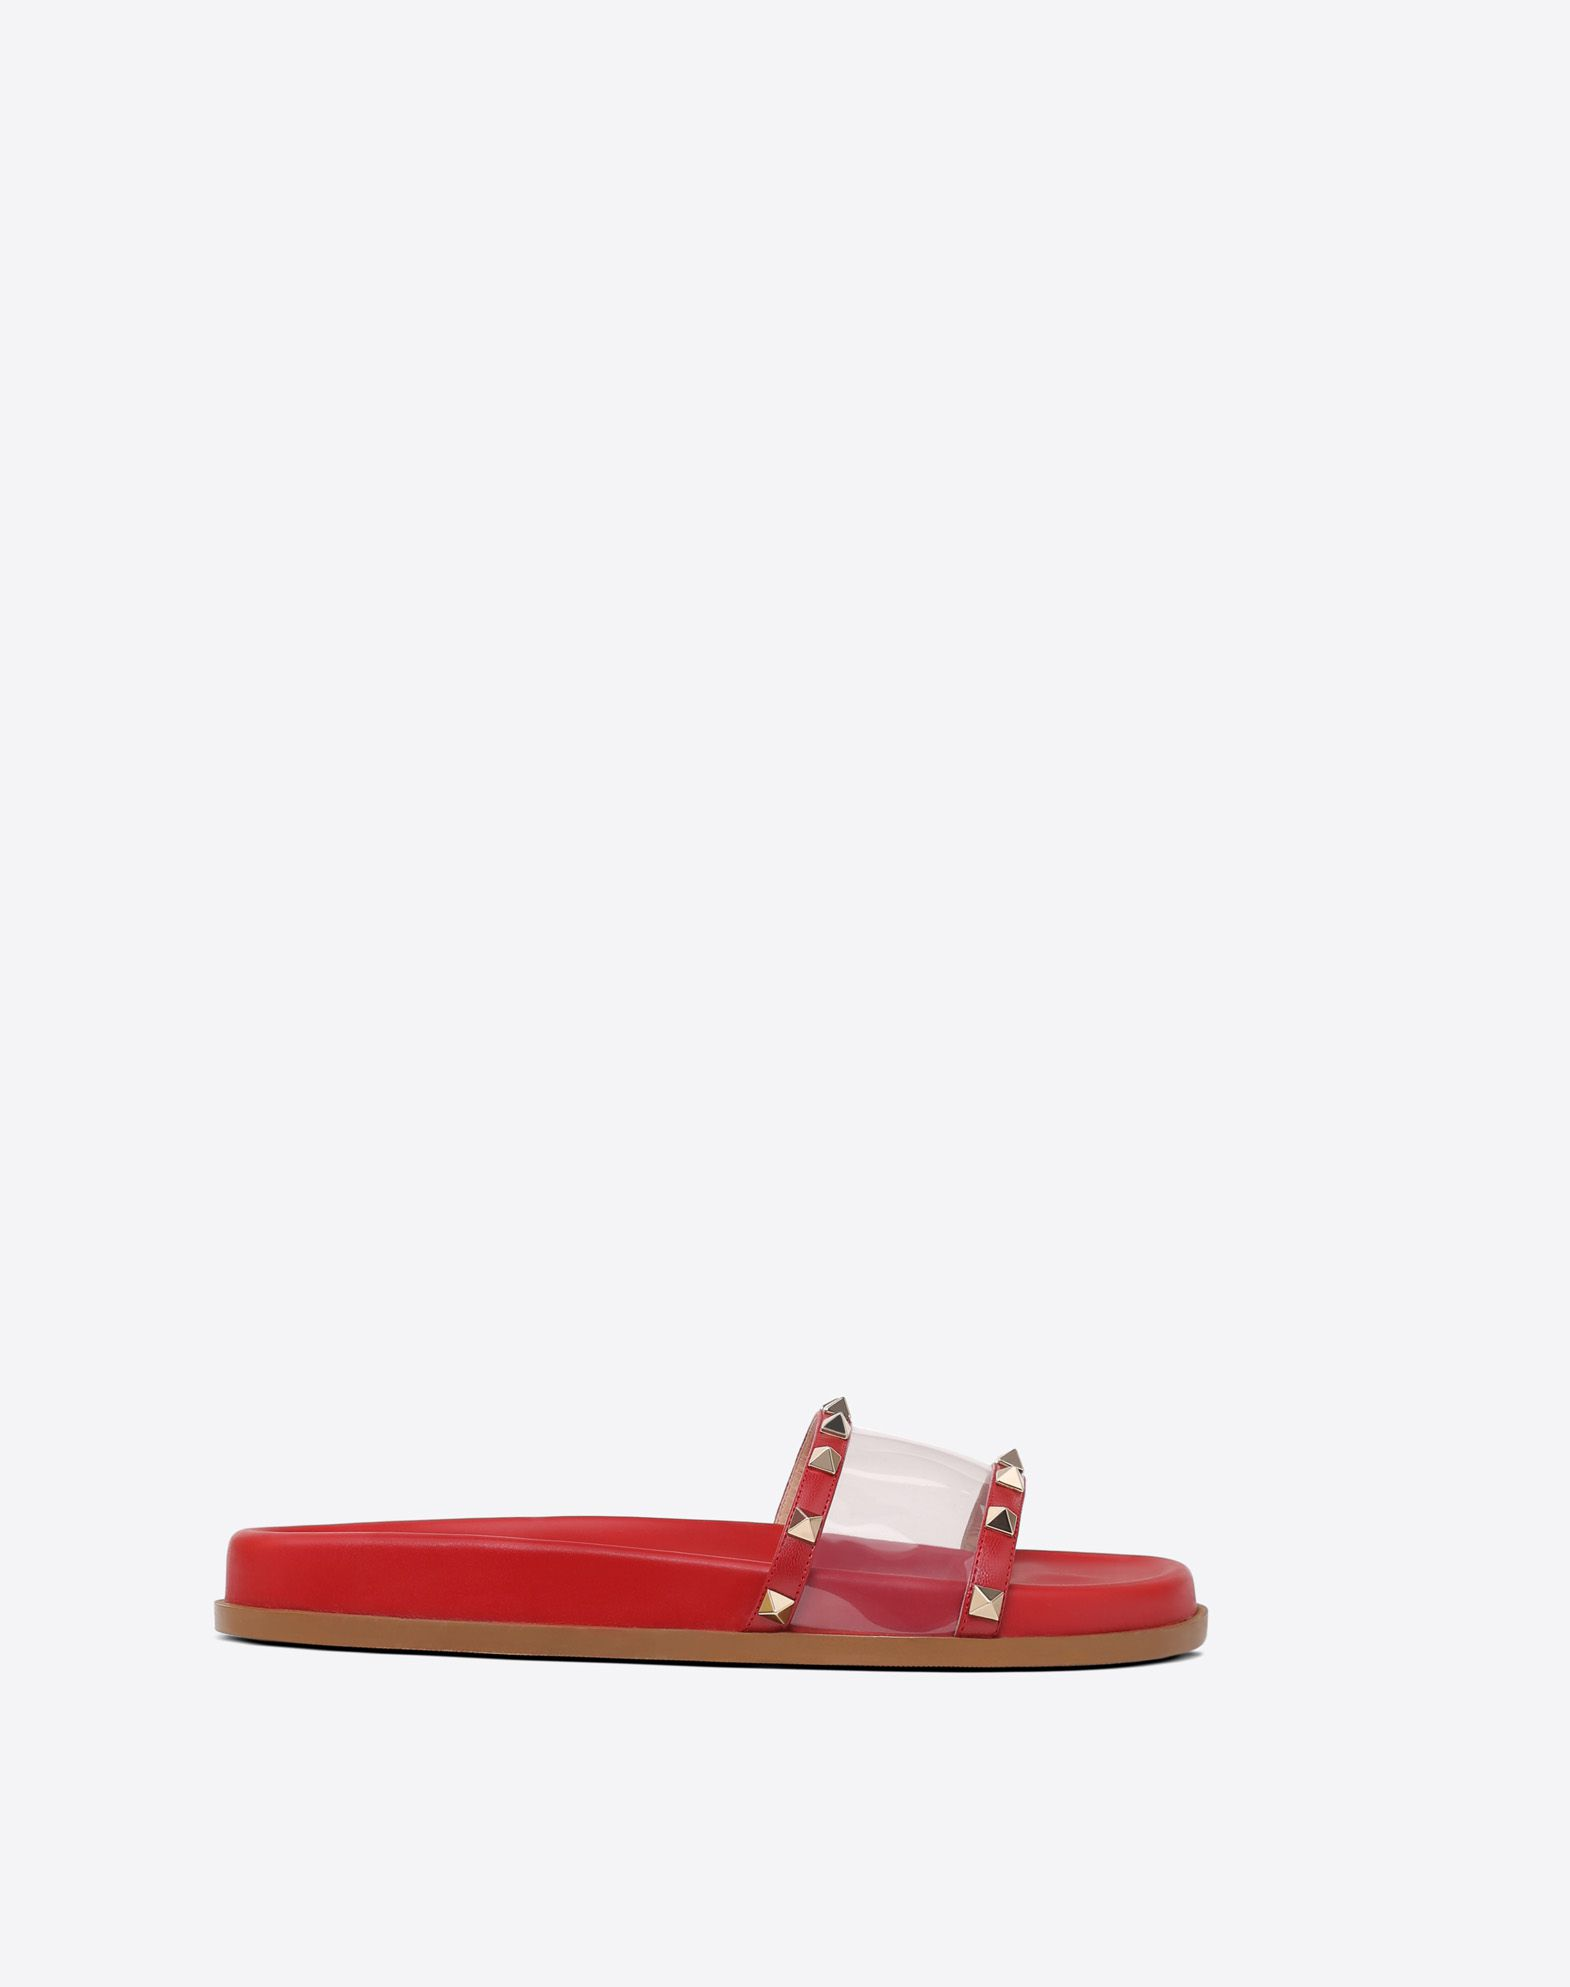 Cheap Official Site Websites Sale Online Valentino See Through Sliders Sneakernews For Sale Cheap Prices Reliable Iw2wN1Xw